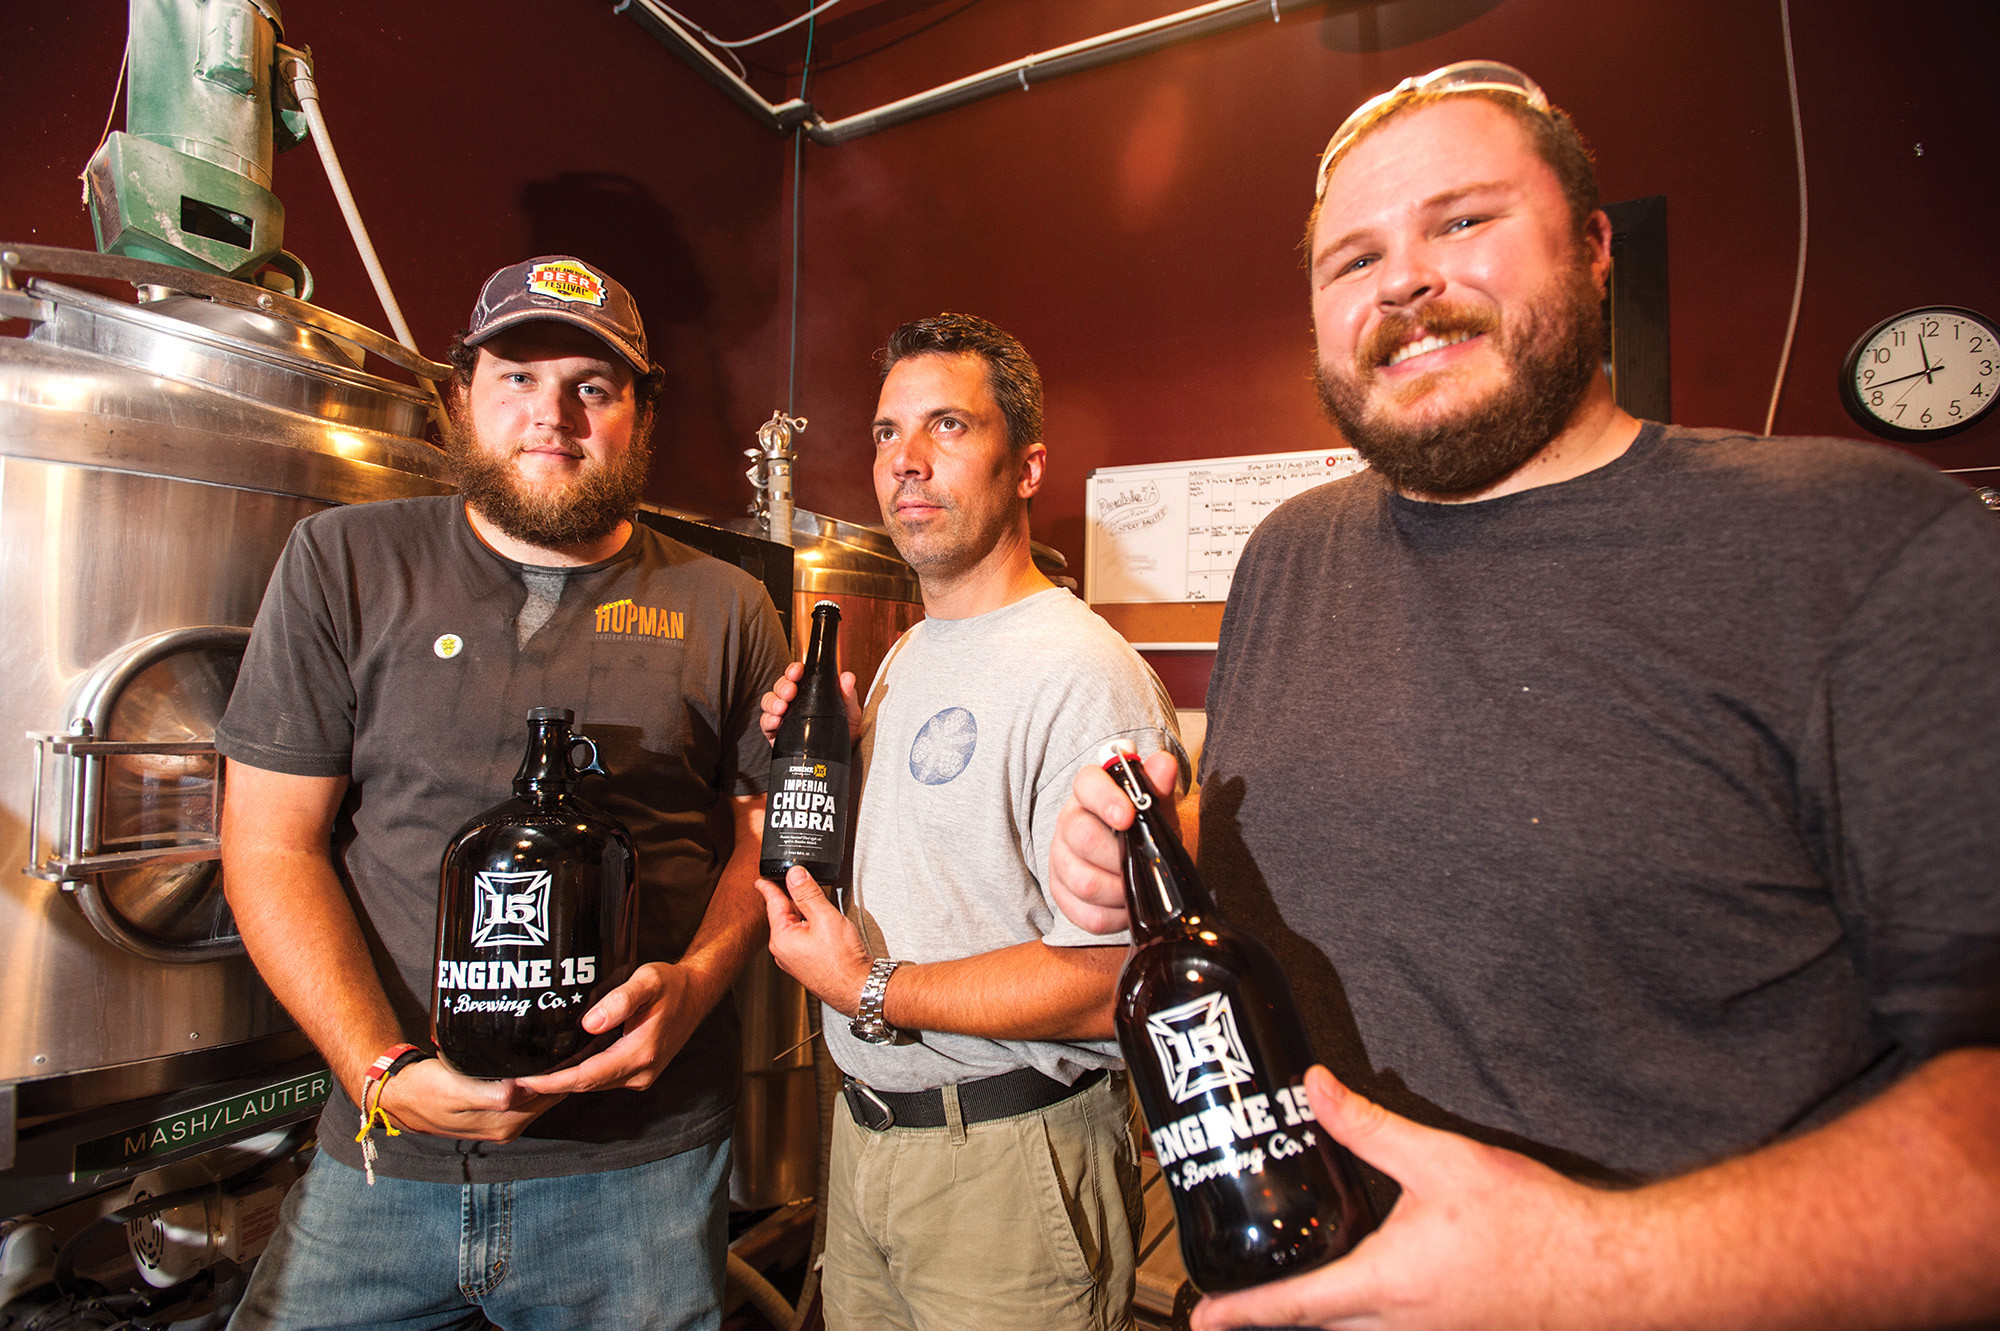 Sean Bielman (from left), Brewmaster Luciano (Luch) Scremin and David Morenus create the atmosphere of a brew pub in the Fatherland with a Jacksonville Beach bent at Engine 15 Brewing Company.